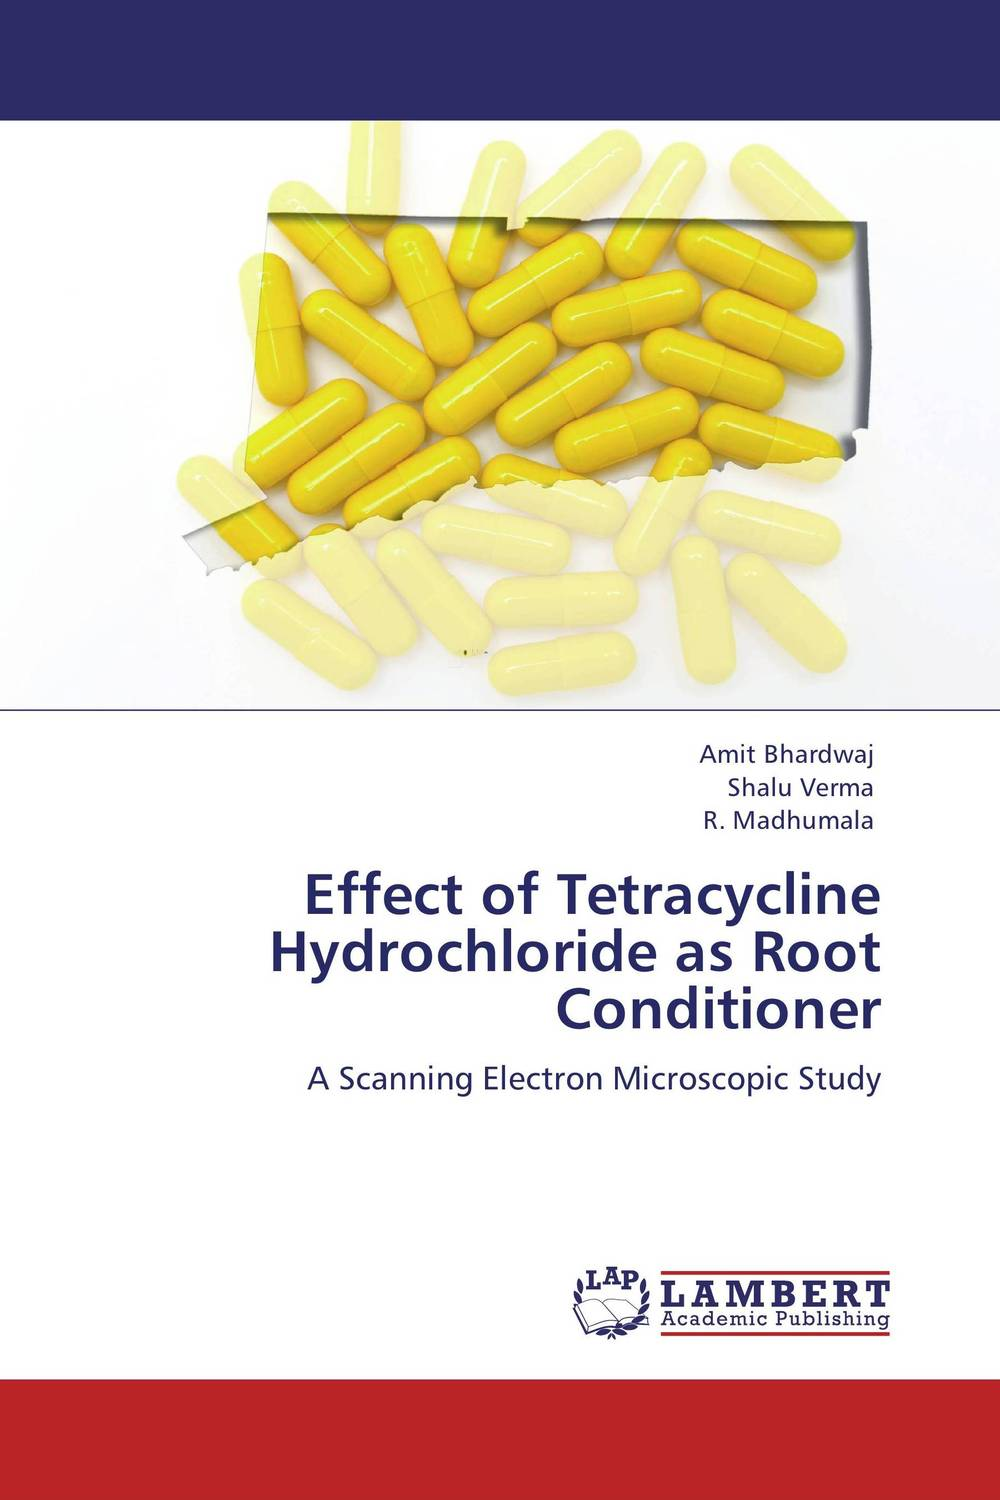 Effect of Tetracycline Hydrochloride as Root Conditioner found in brooklyn